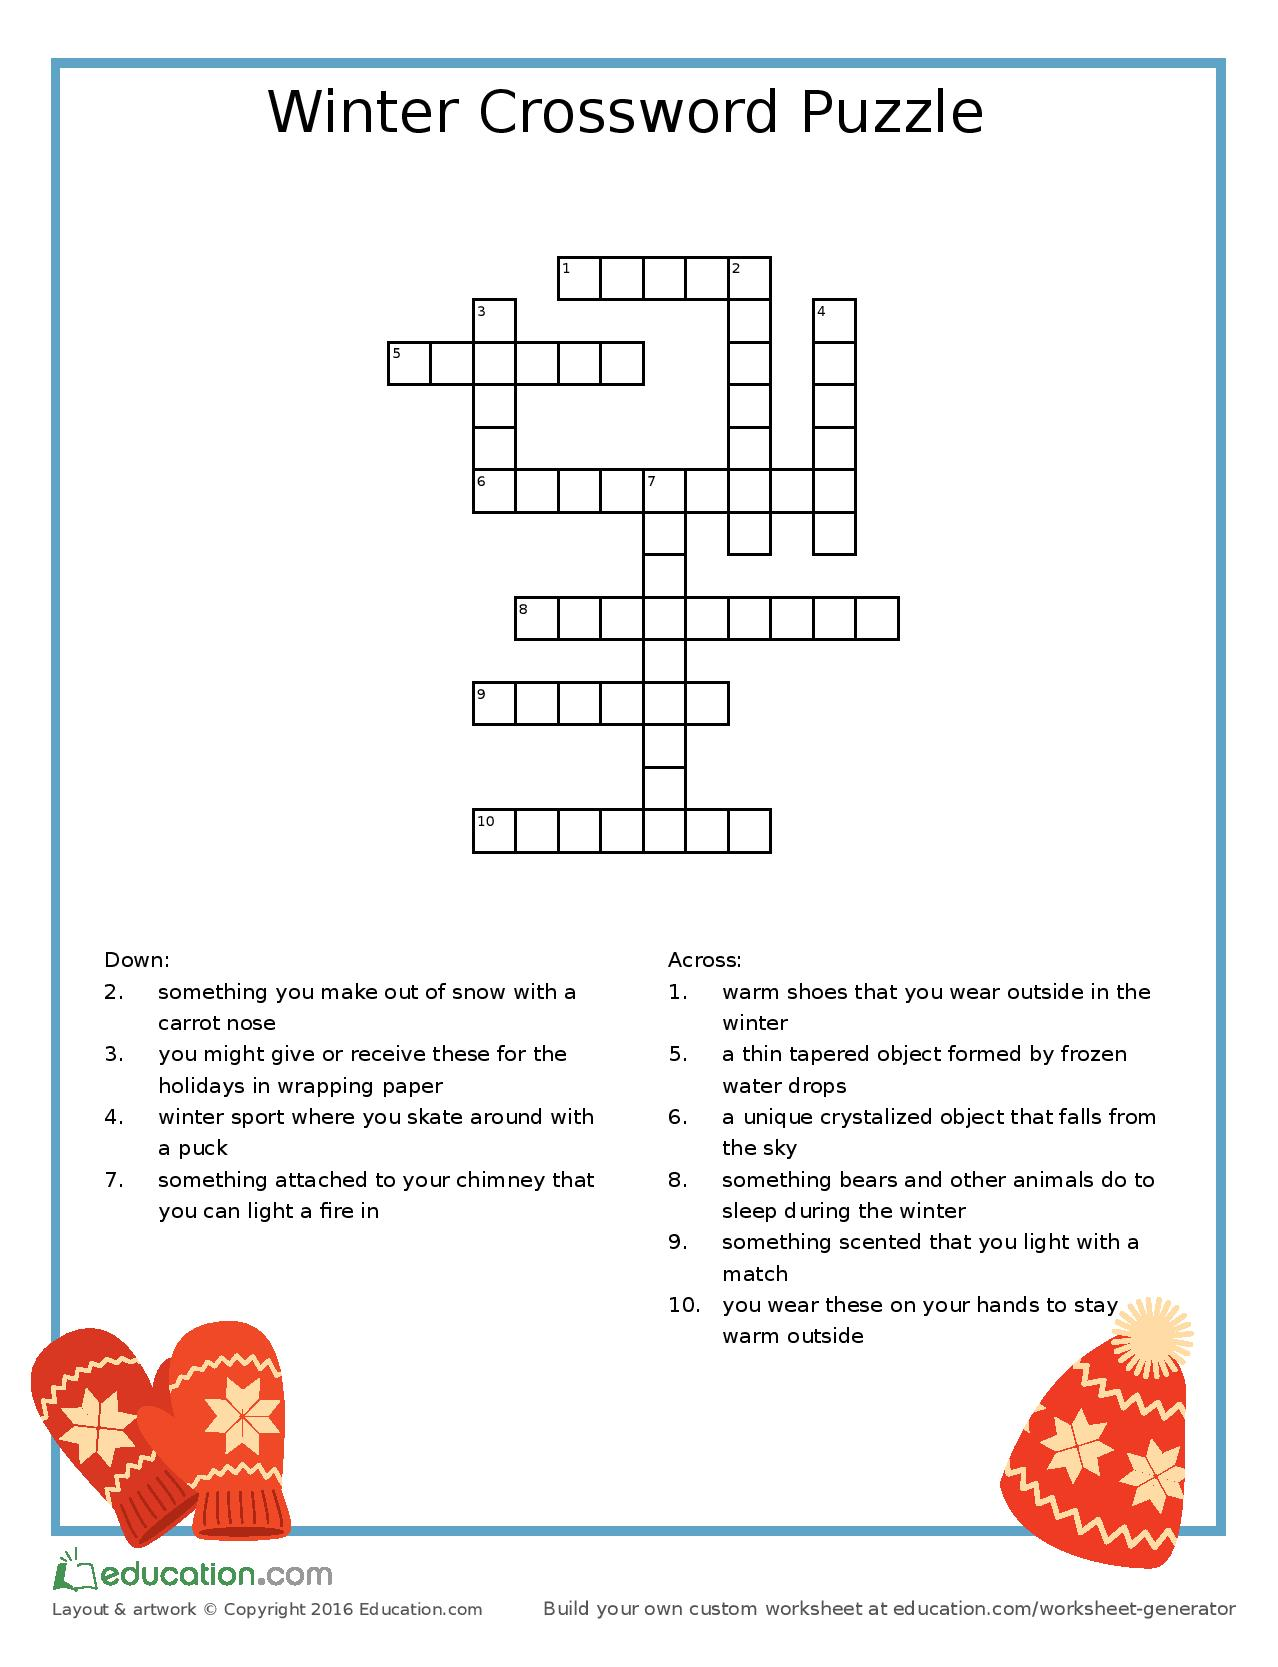 A Winter Crossword To Keep The Children Busy Mum S Guide To